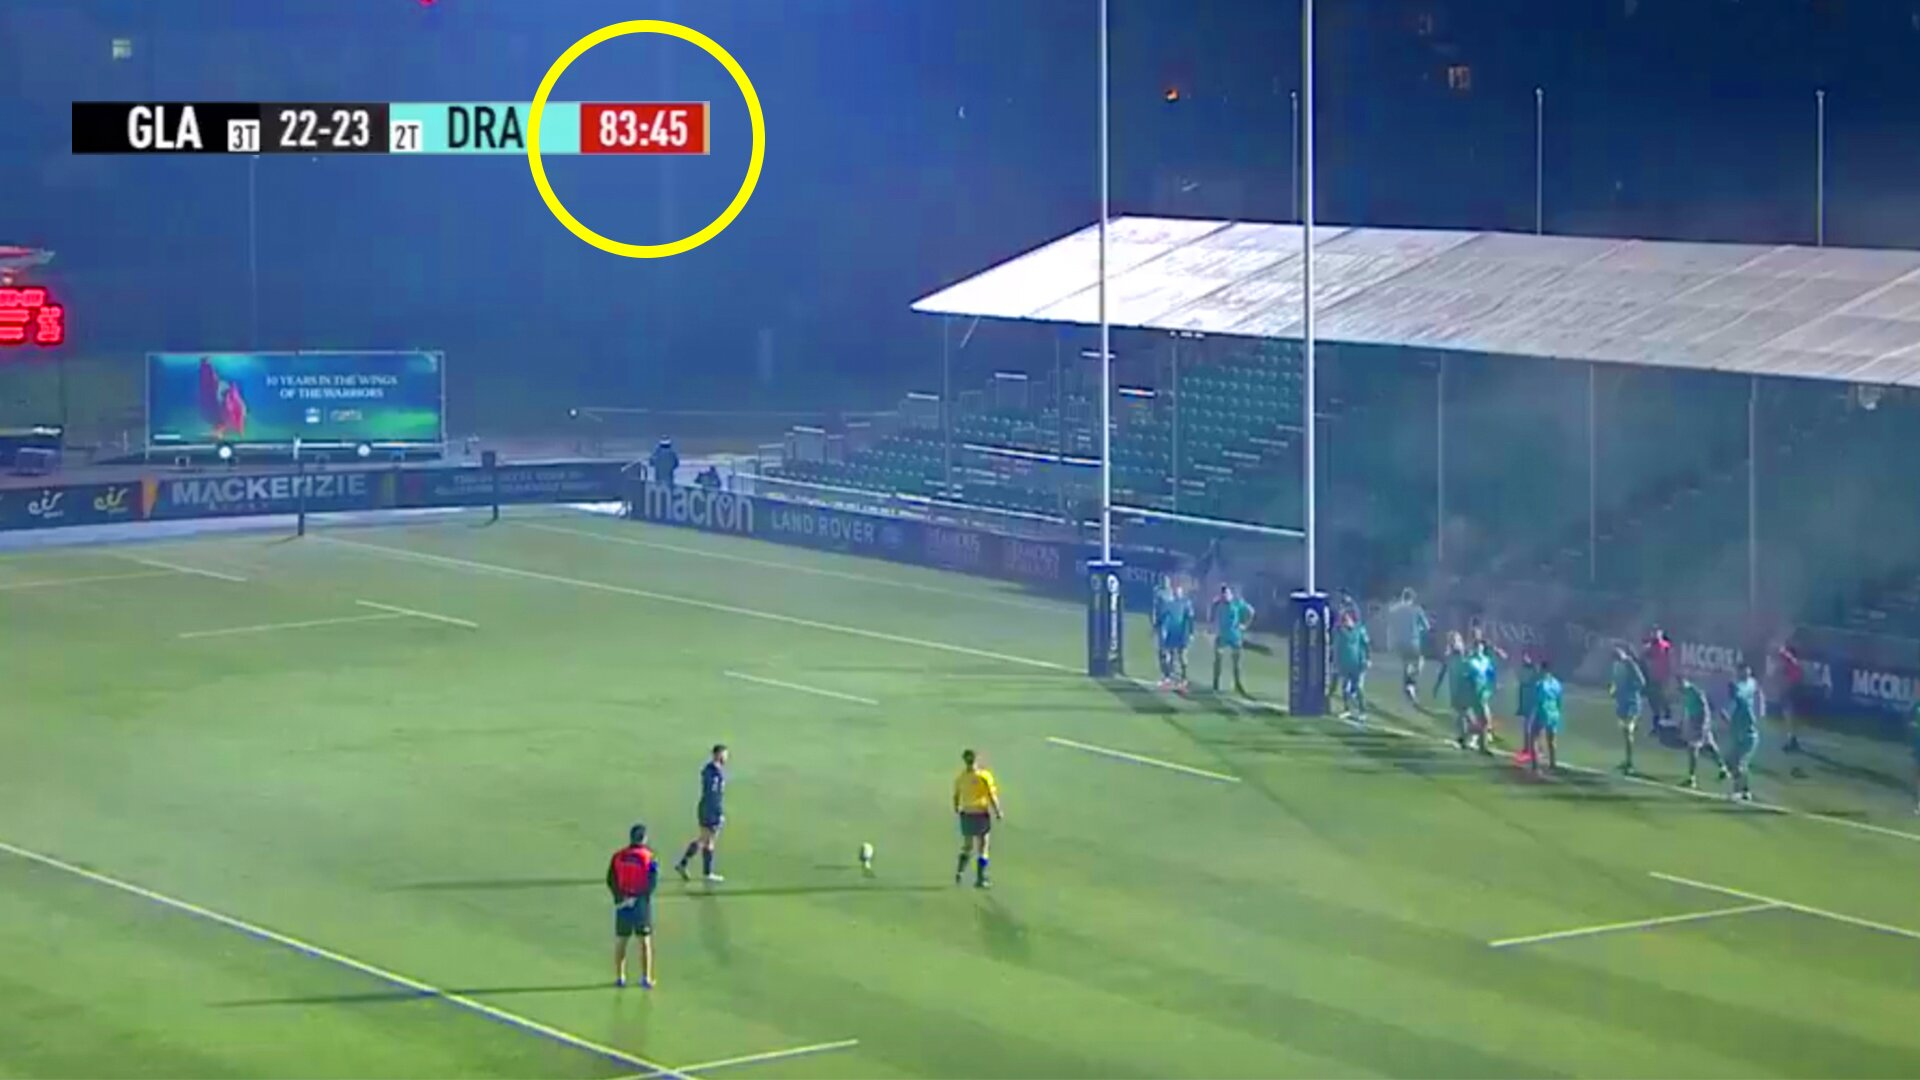 Horror in PRO 14 as player steps up to take penalty to win the match